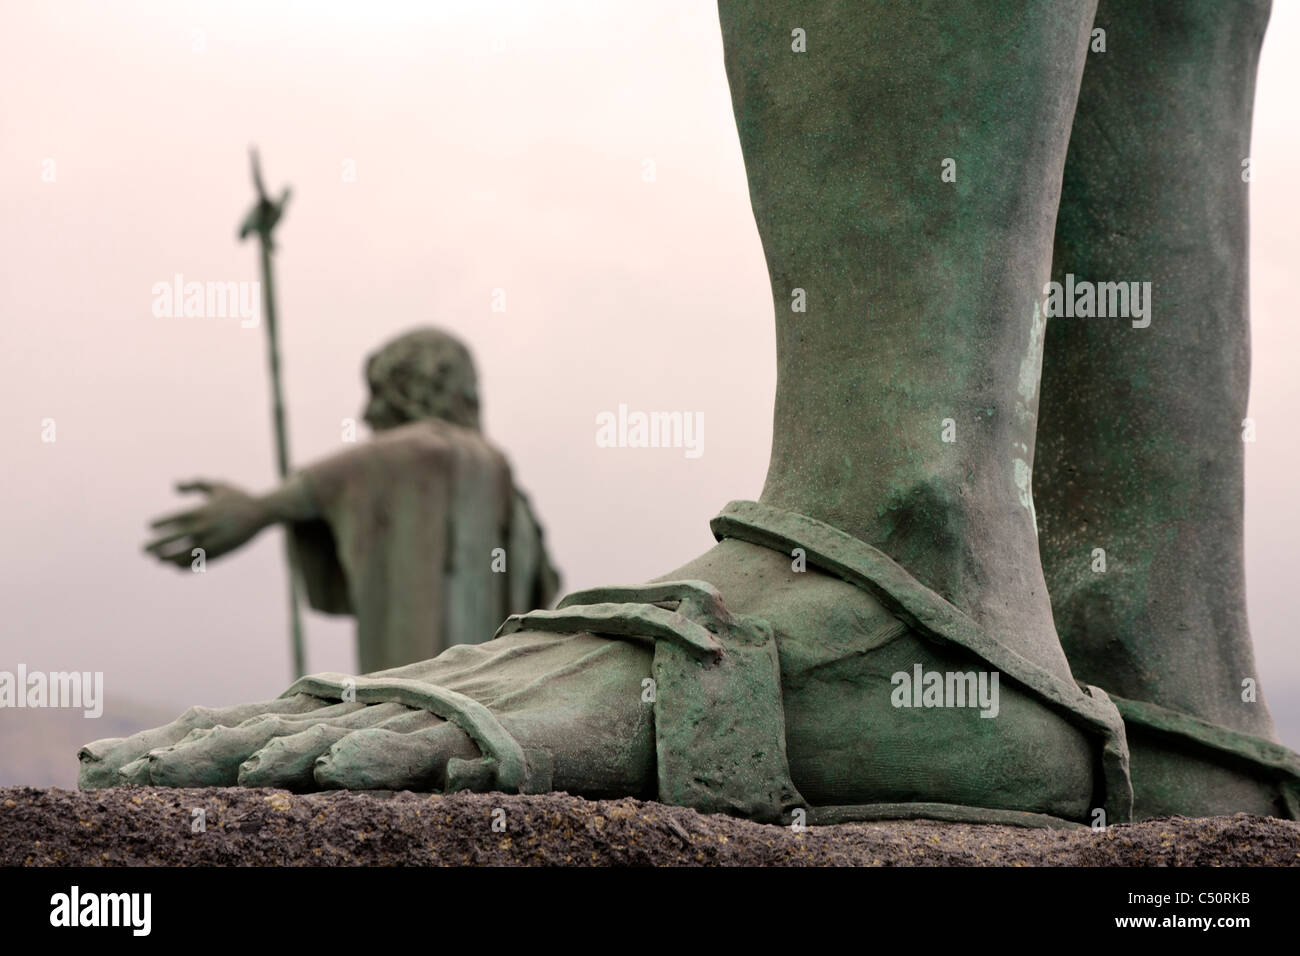 Close up of the left foot of one of the Mencey statues in Candelaria in Tenerife Canary Islands Spain - Stock Image